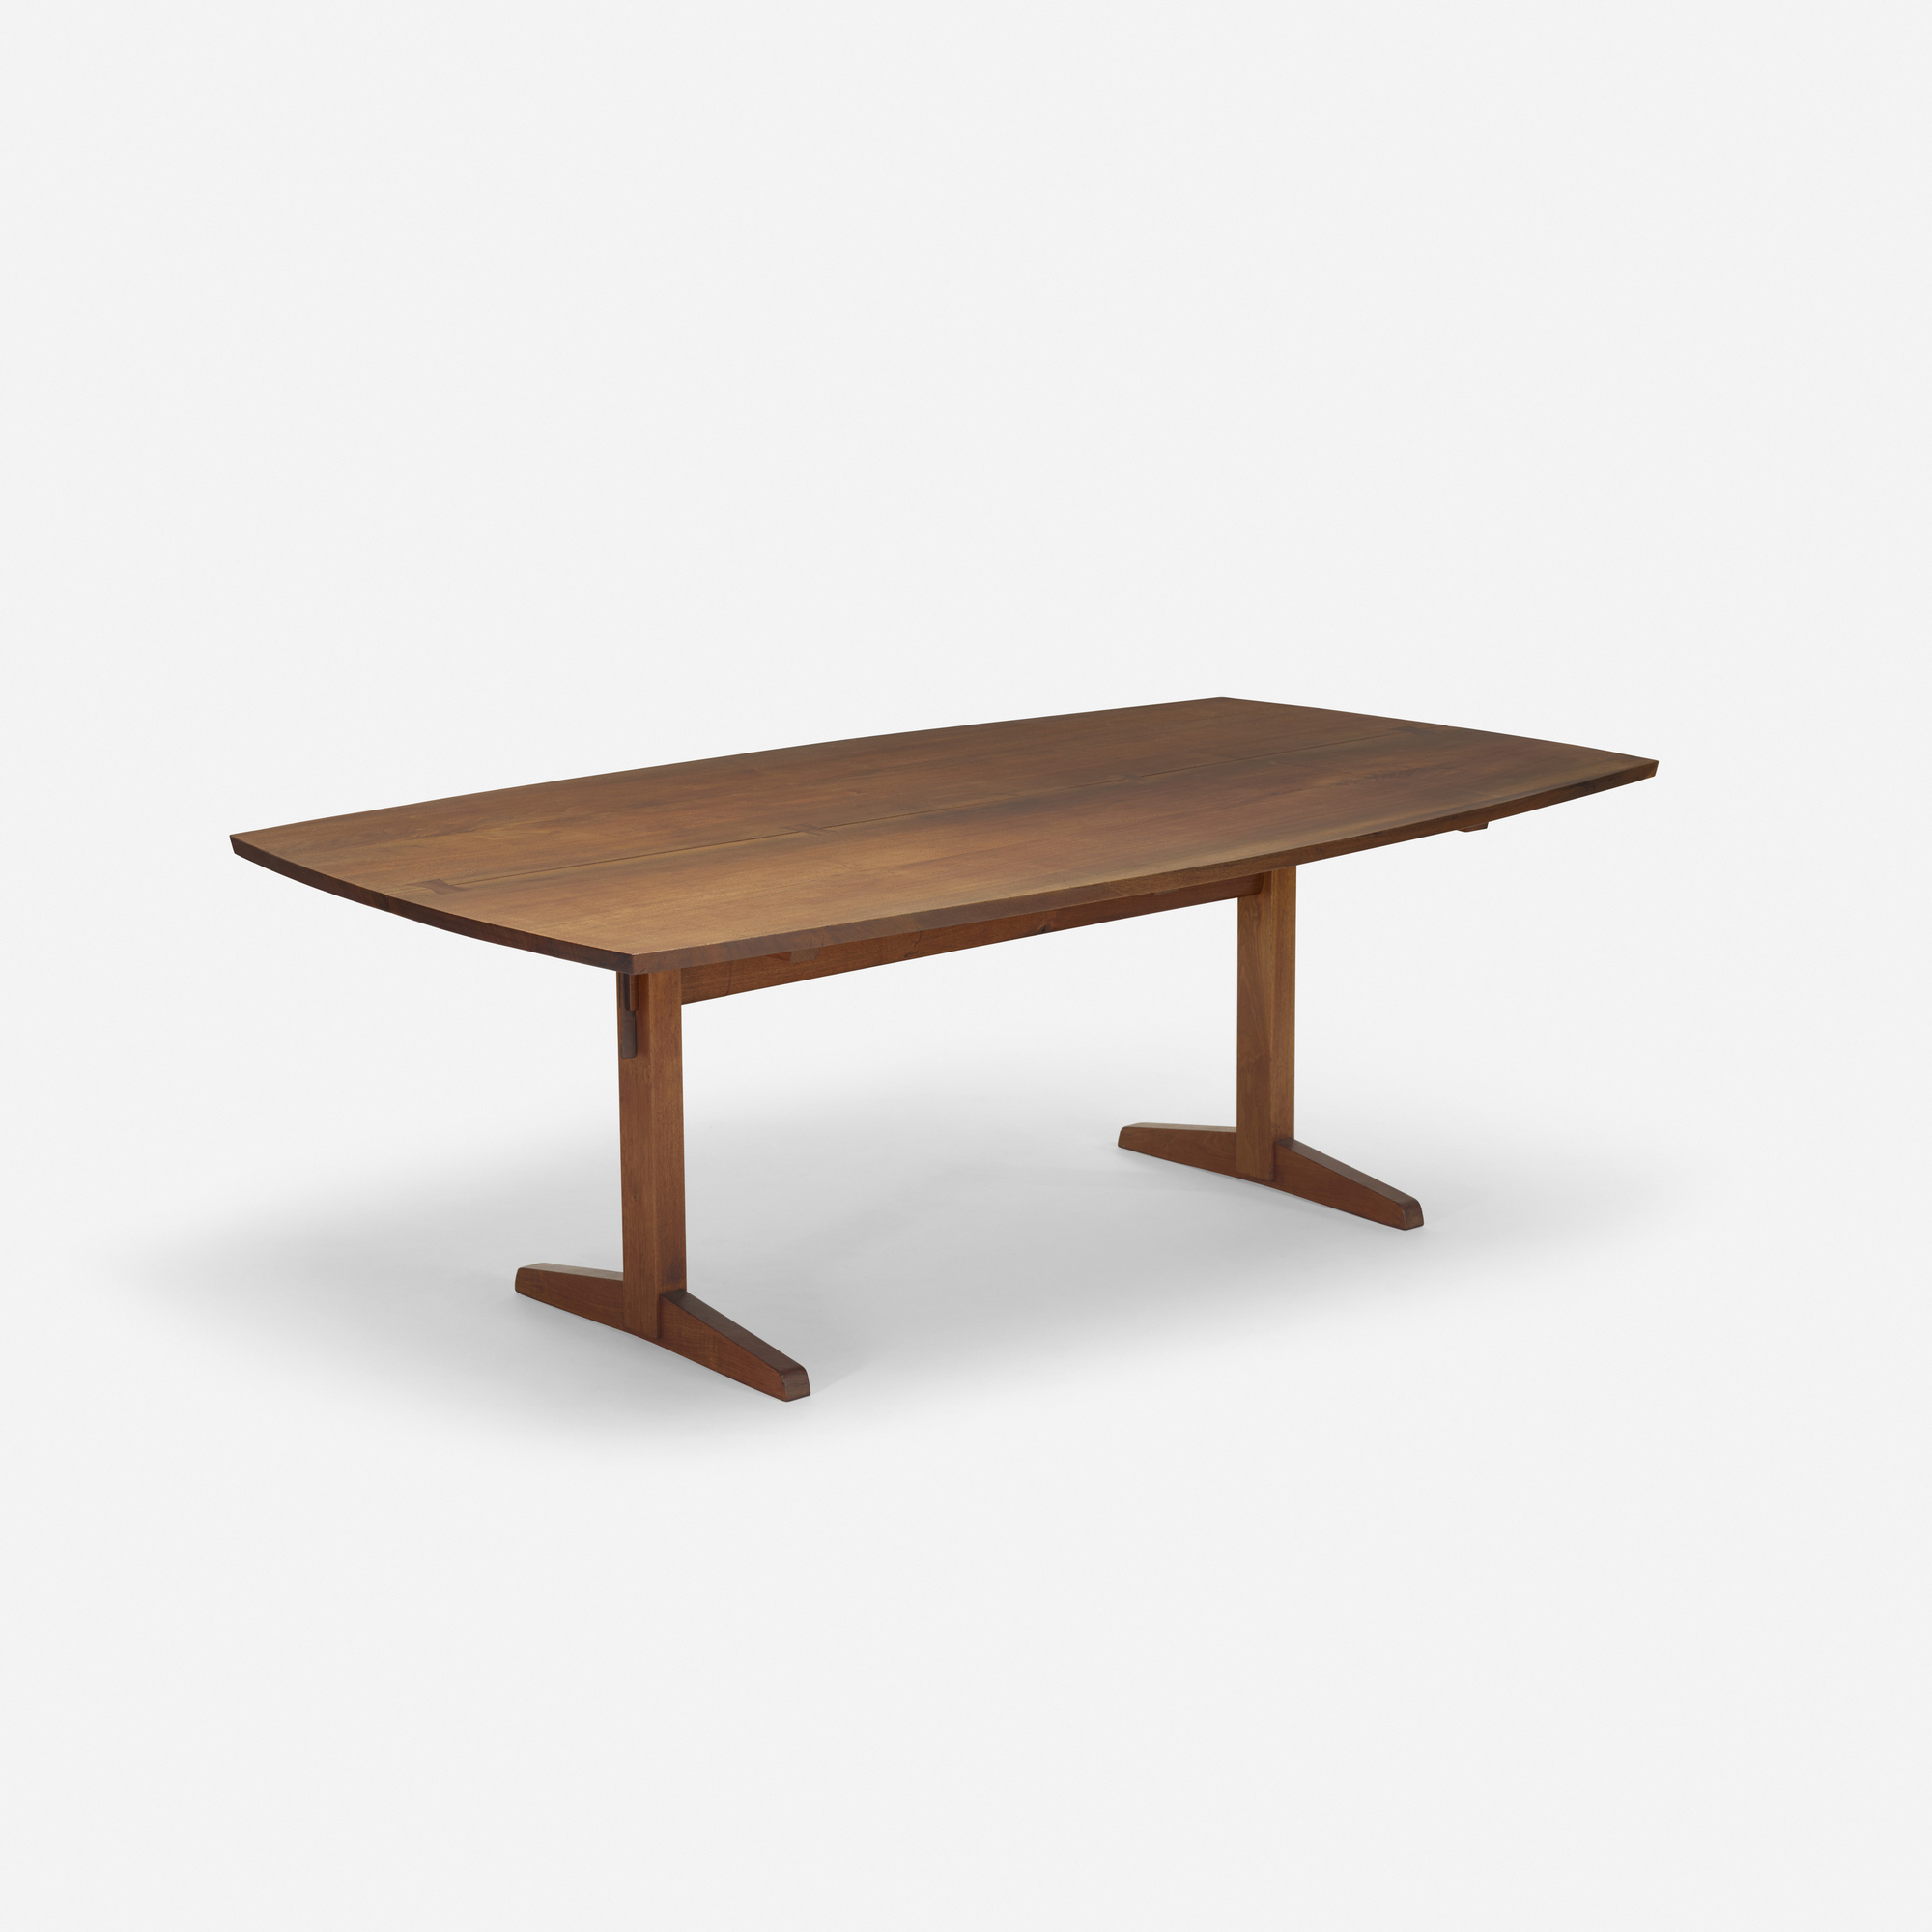 123 george nakashima trestle dining table for Dining table design 2016